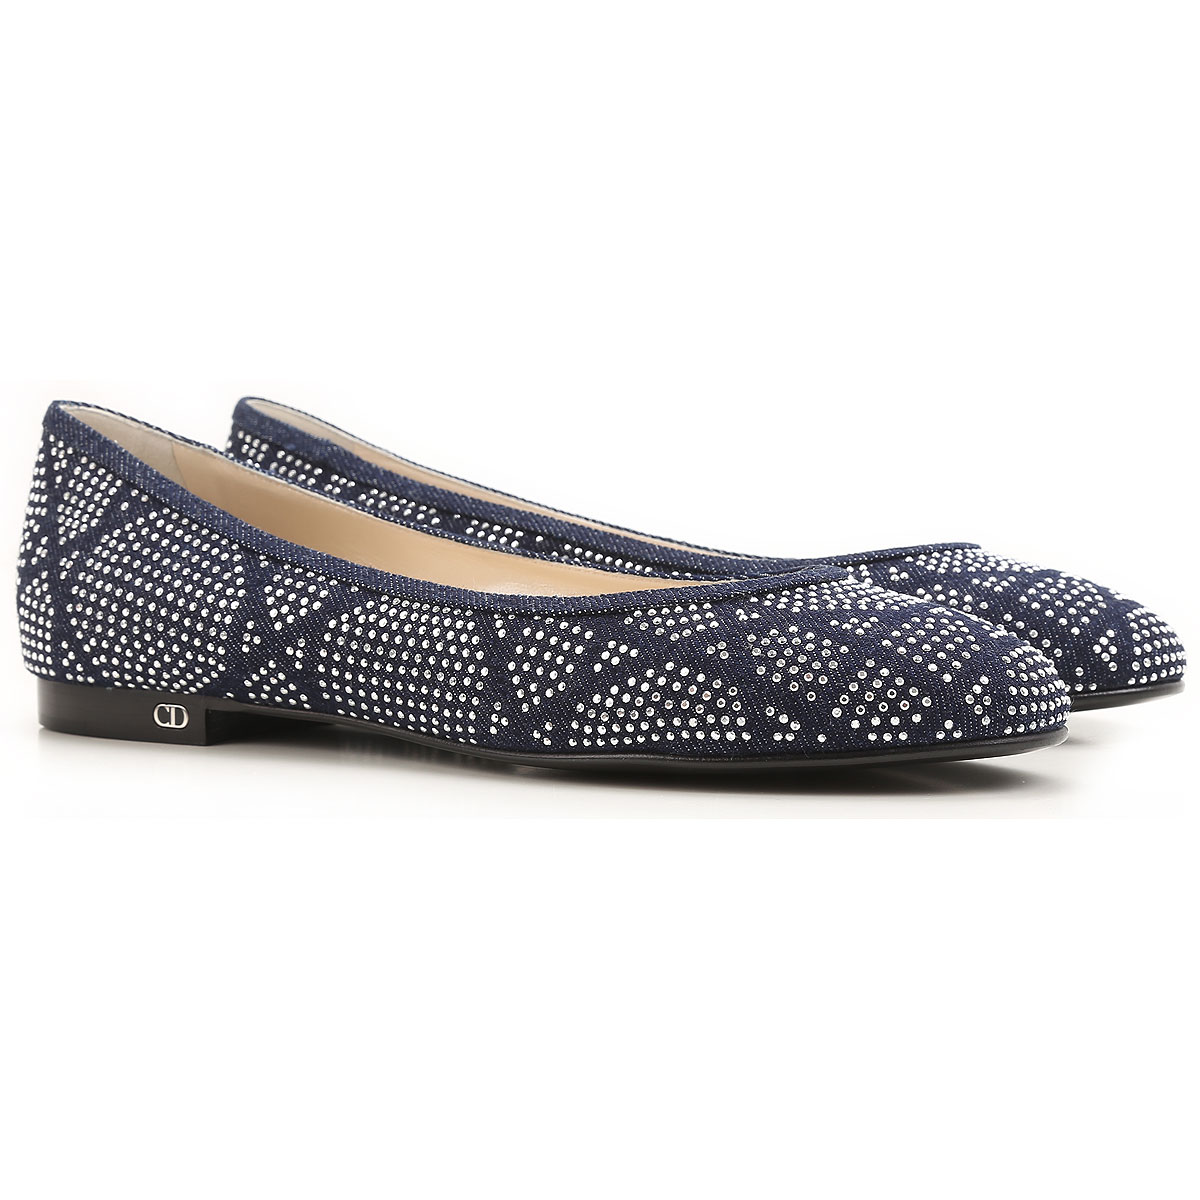 Image of Christian Dior Ballet Flats Ballerina Shoes for Women On Sale in Outlet, Blue Denim, Denim, 2017, 6